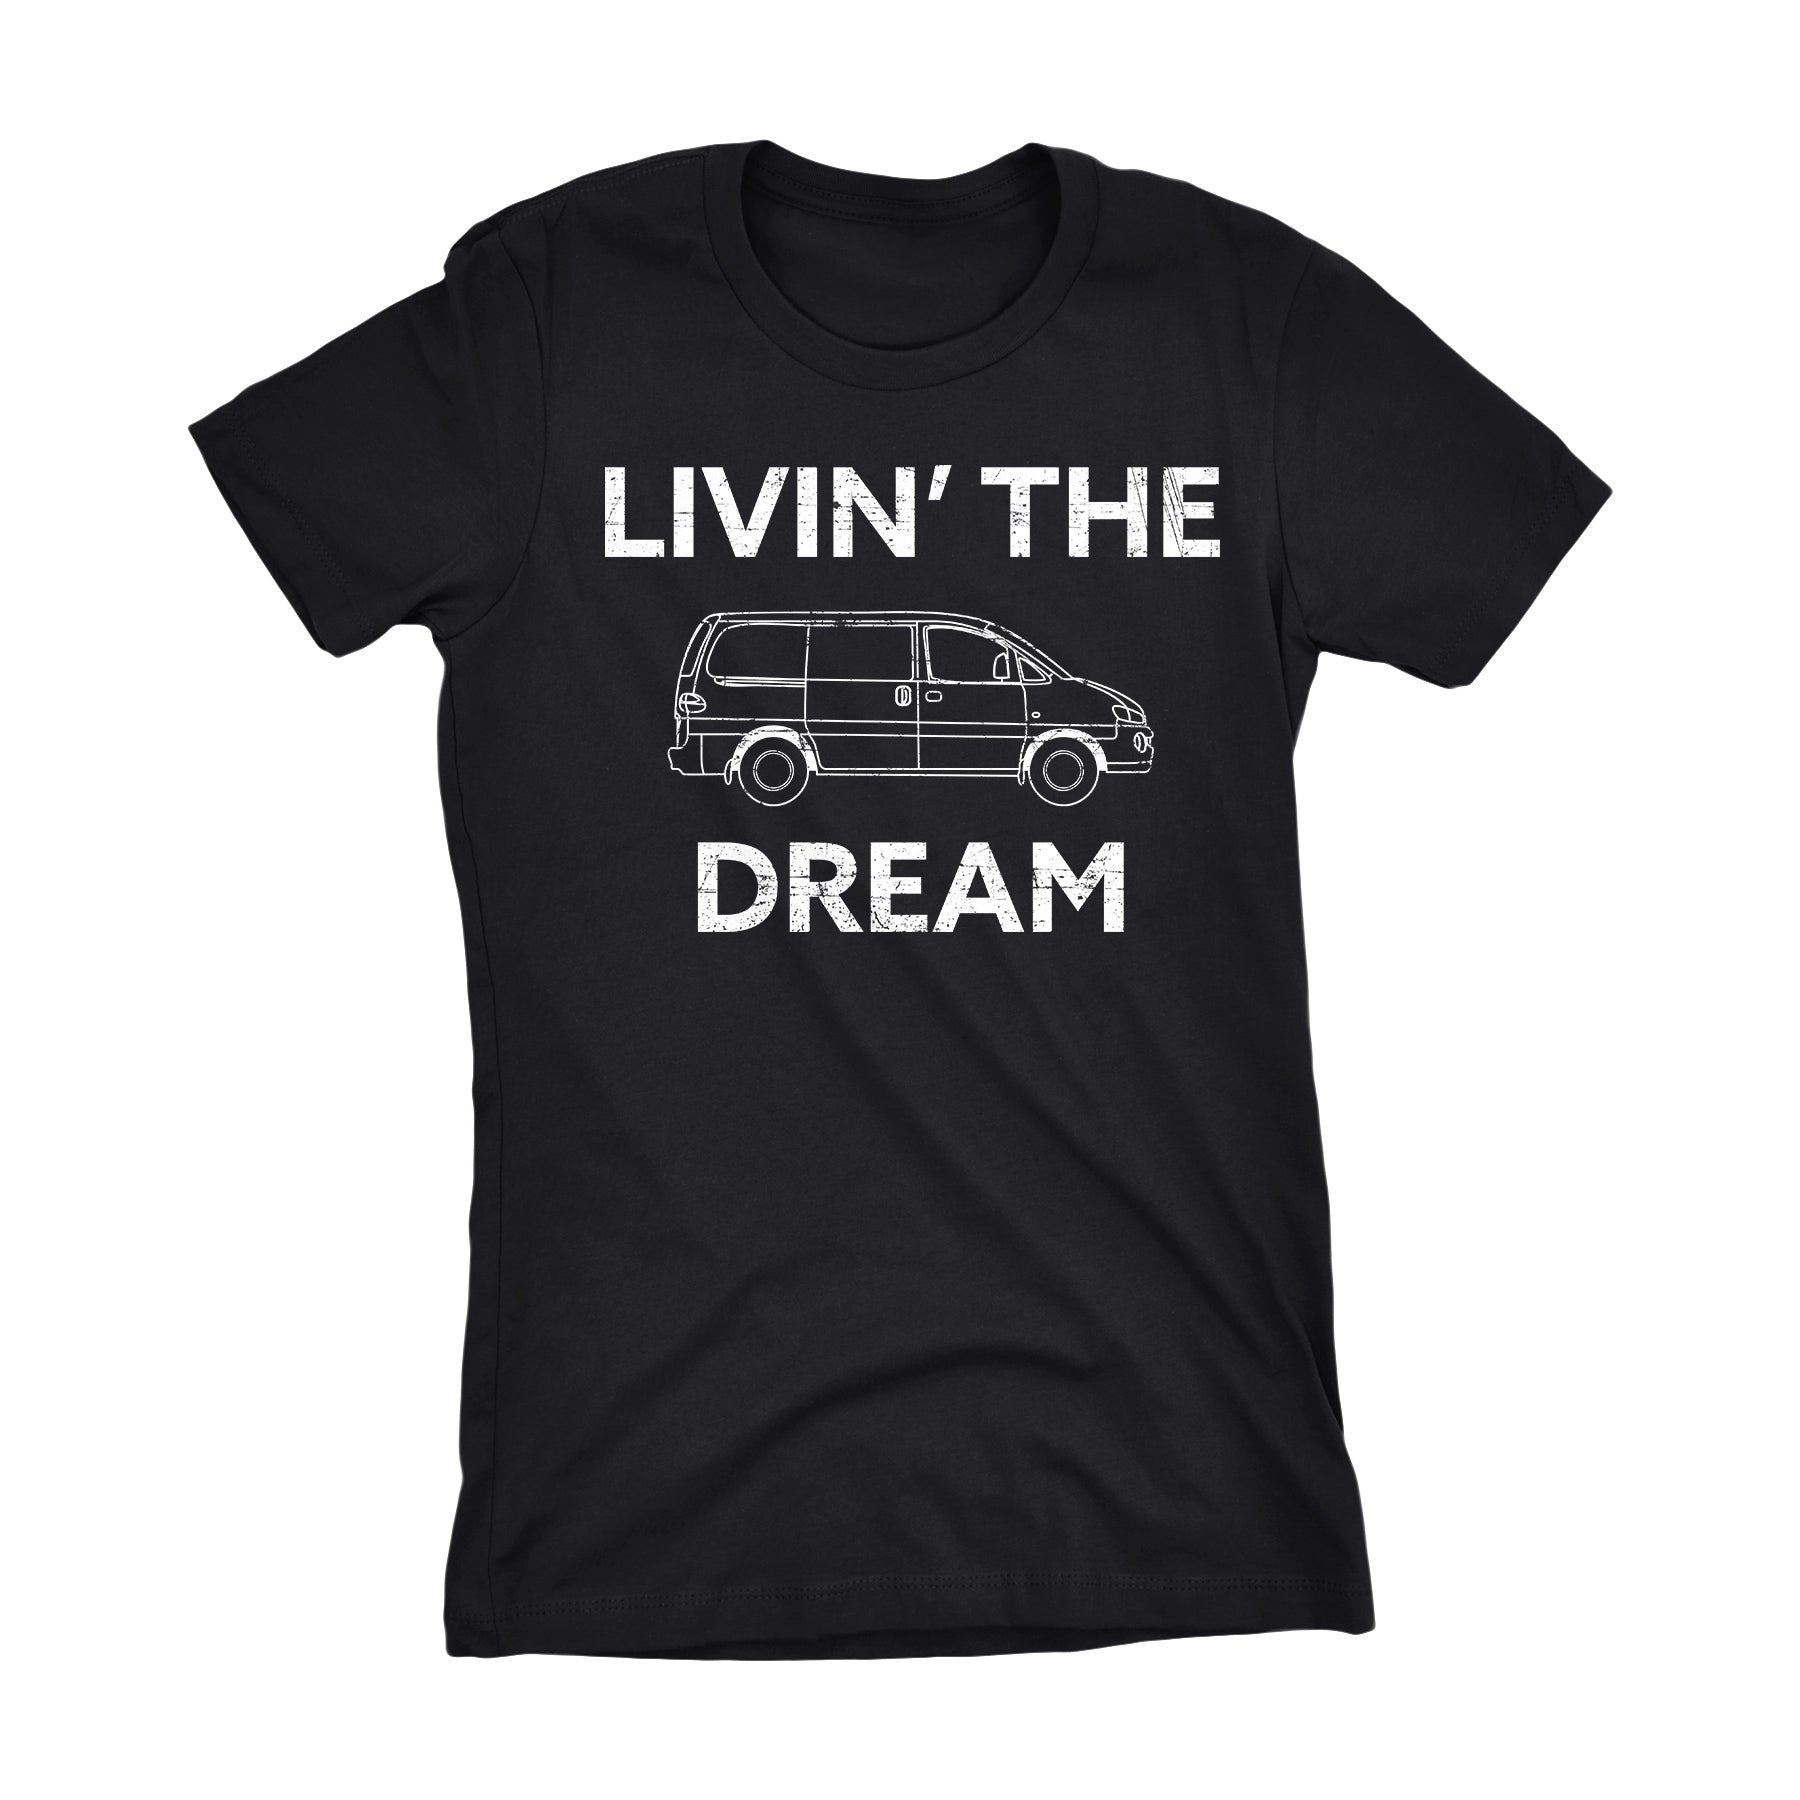 Livin' The Dream - Funny Mom Dad New Parent Ladies Fit T-Shirt